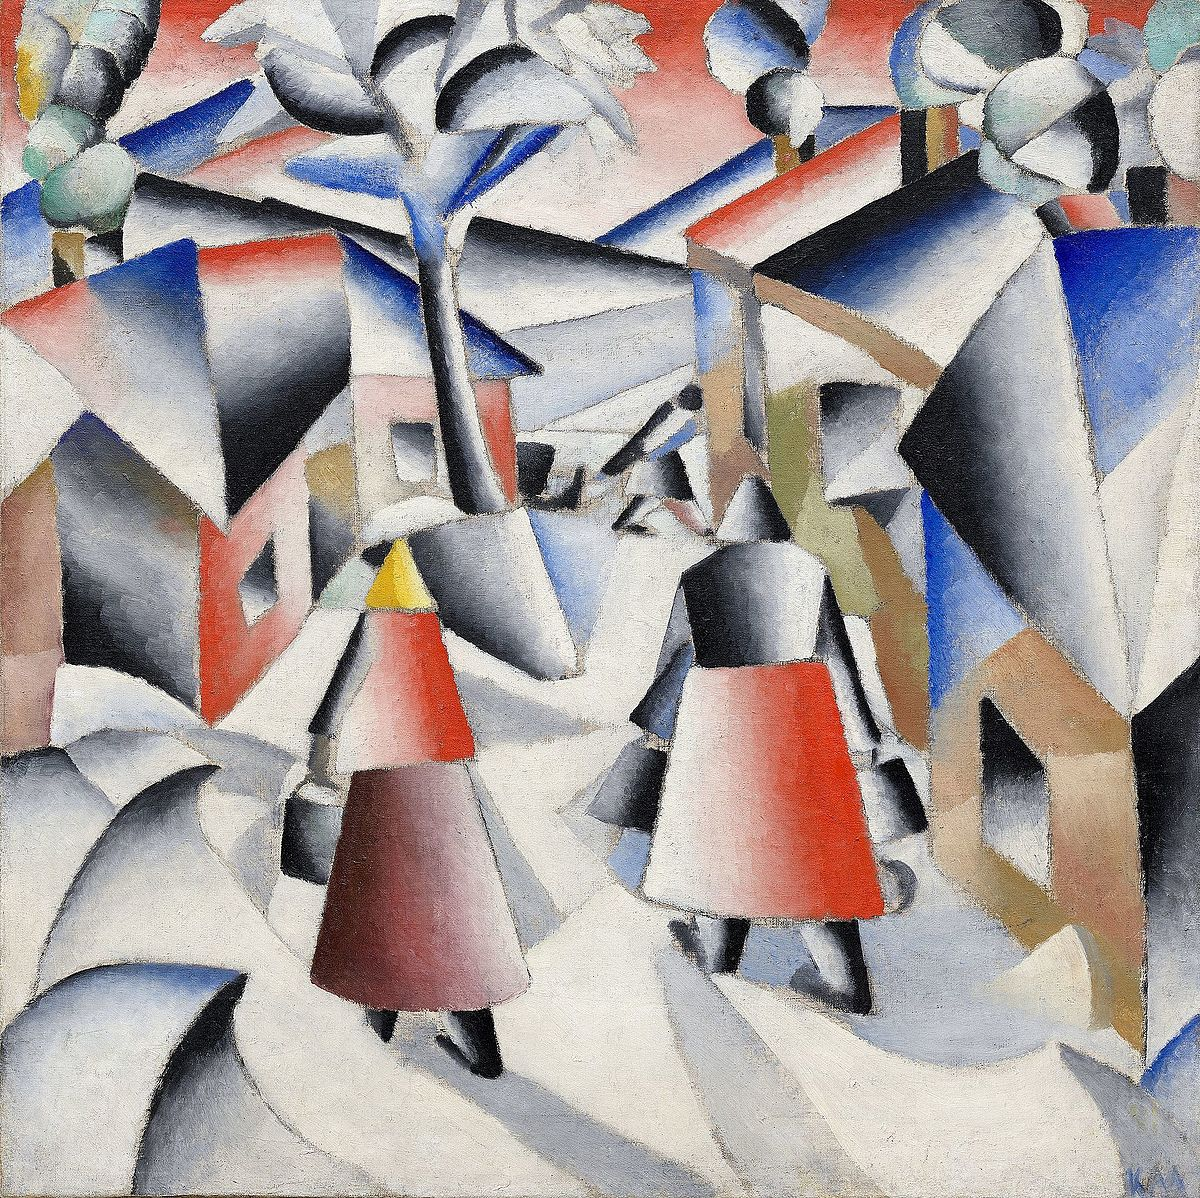 Morning in the Village after Snowstorm by Kazimir Malevich Reproduction Painting